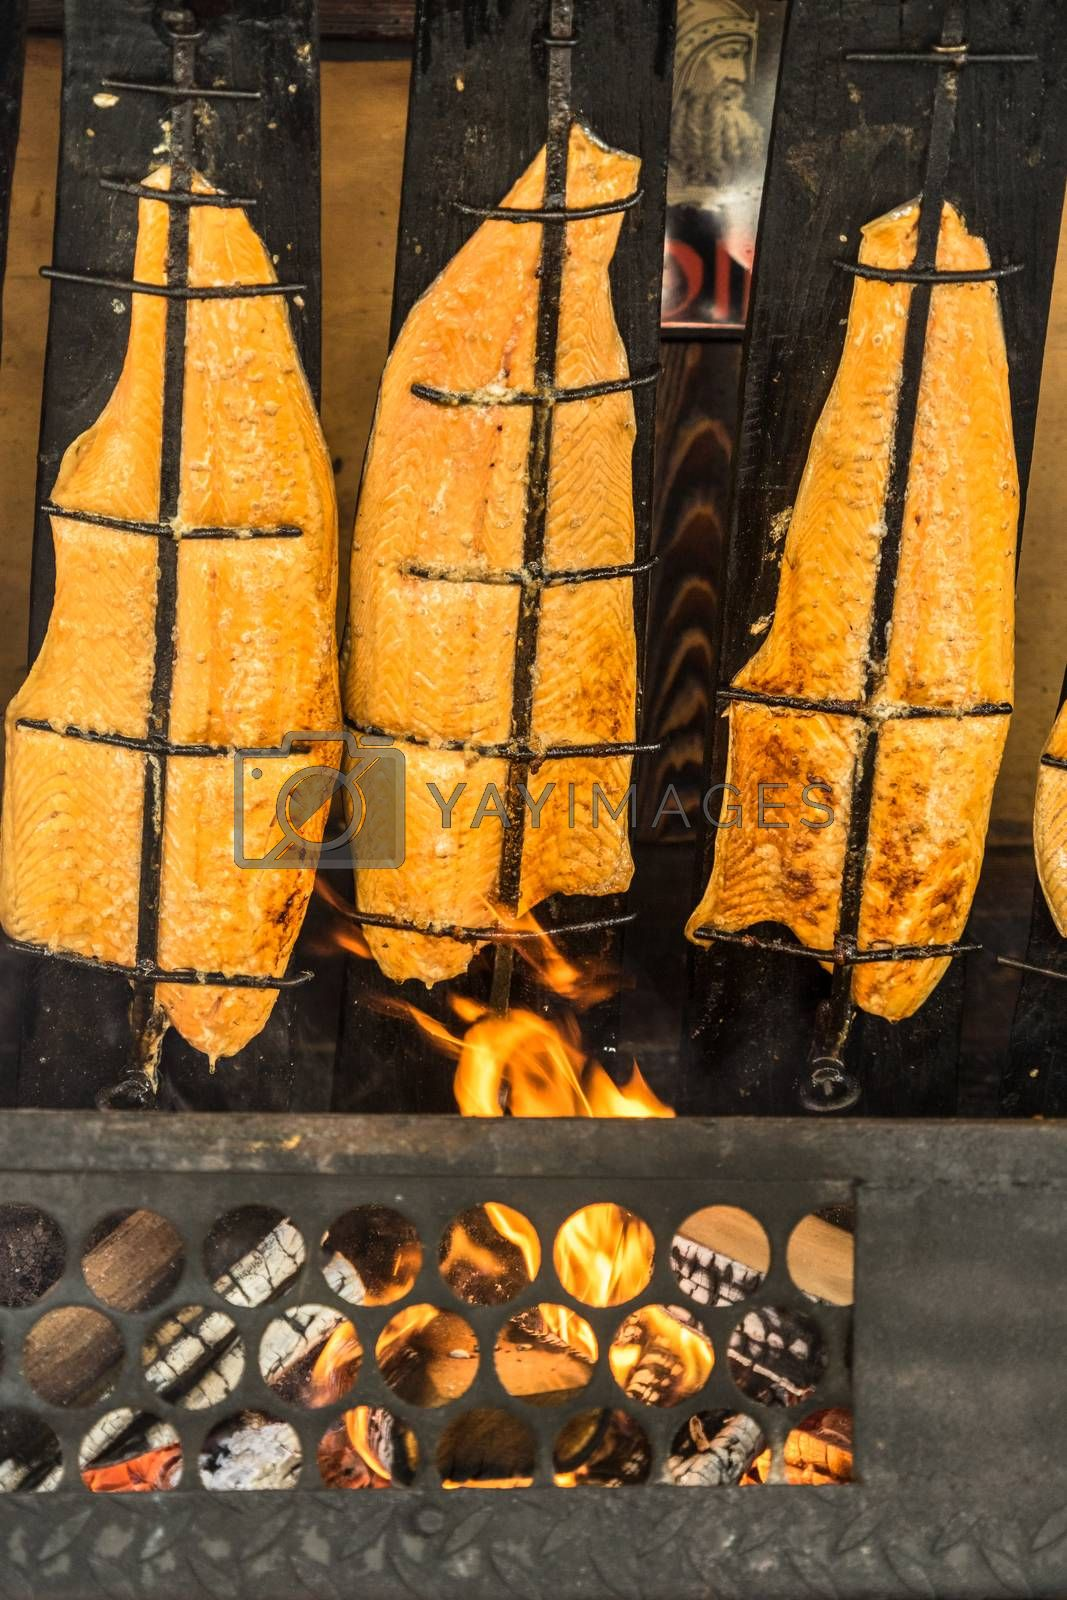 Preparation of flame salmon over the open fire of an open fireplace loaded with wood, Germany